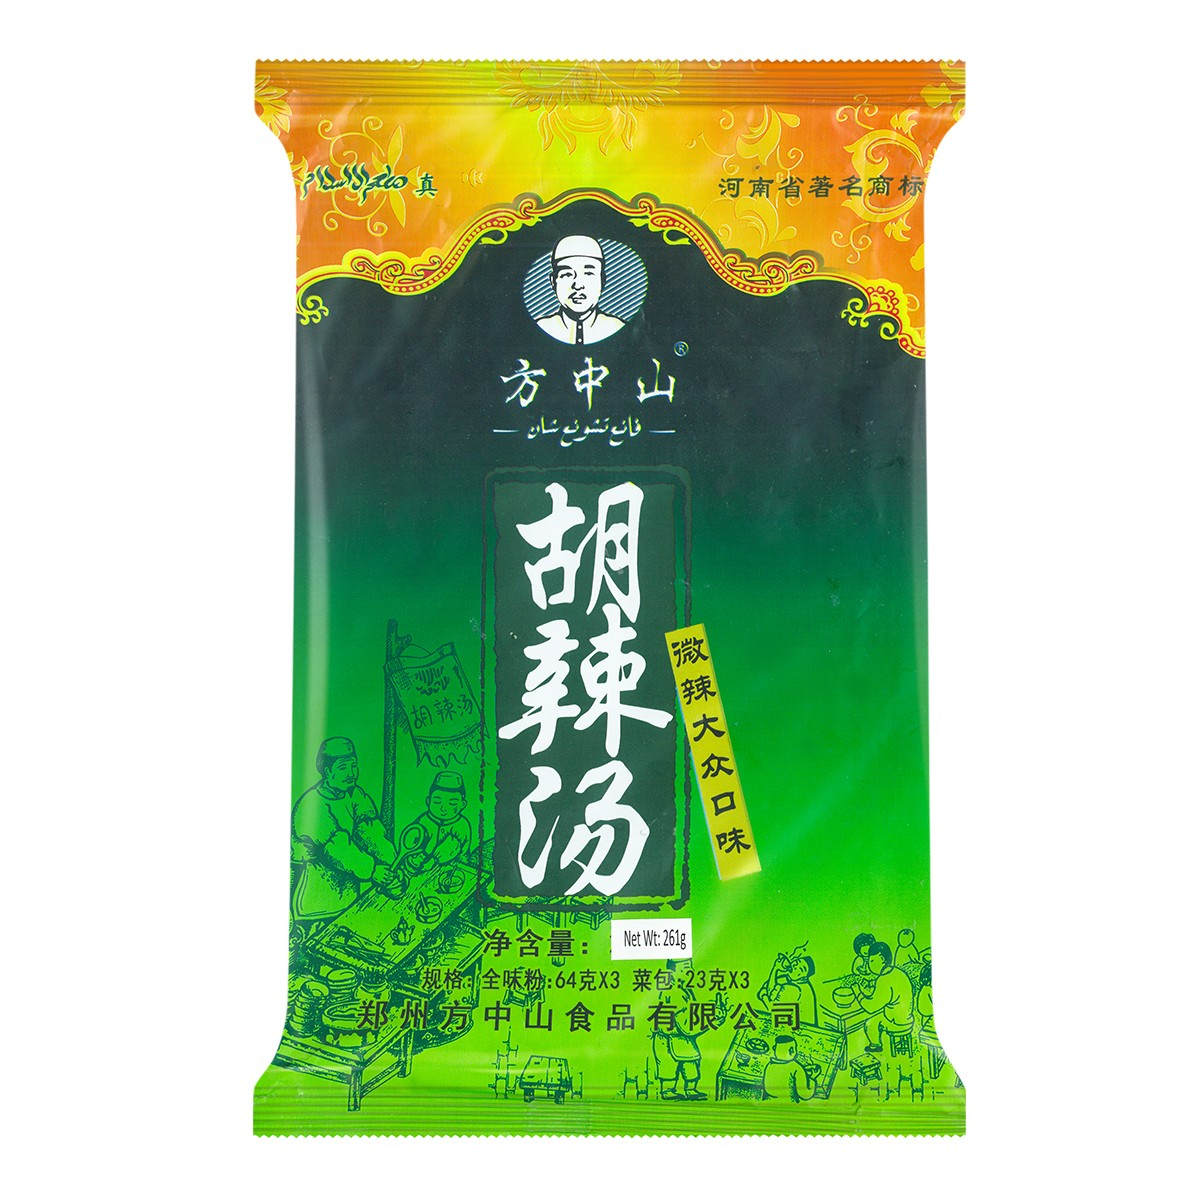 FANGZHONGSHAN Spicy Soup Base 261g